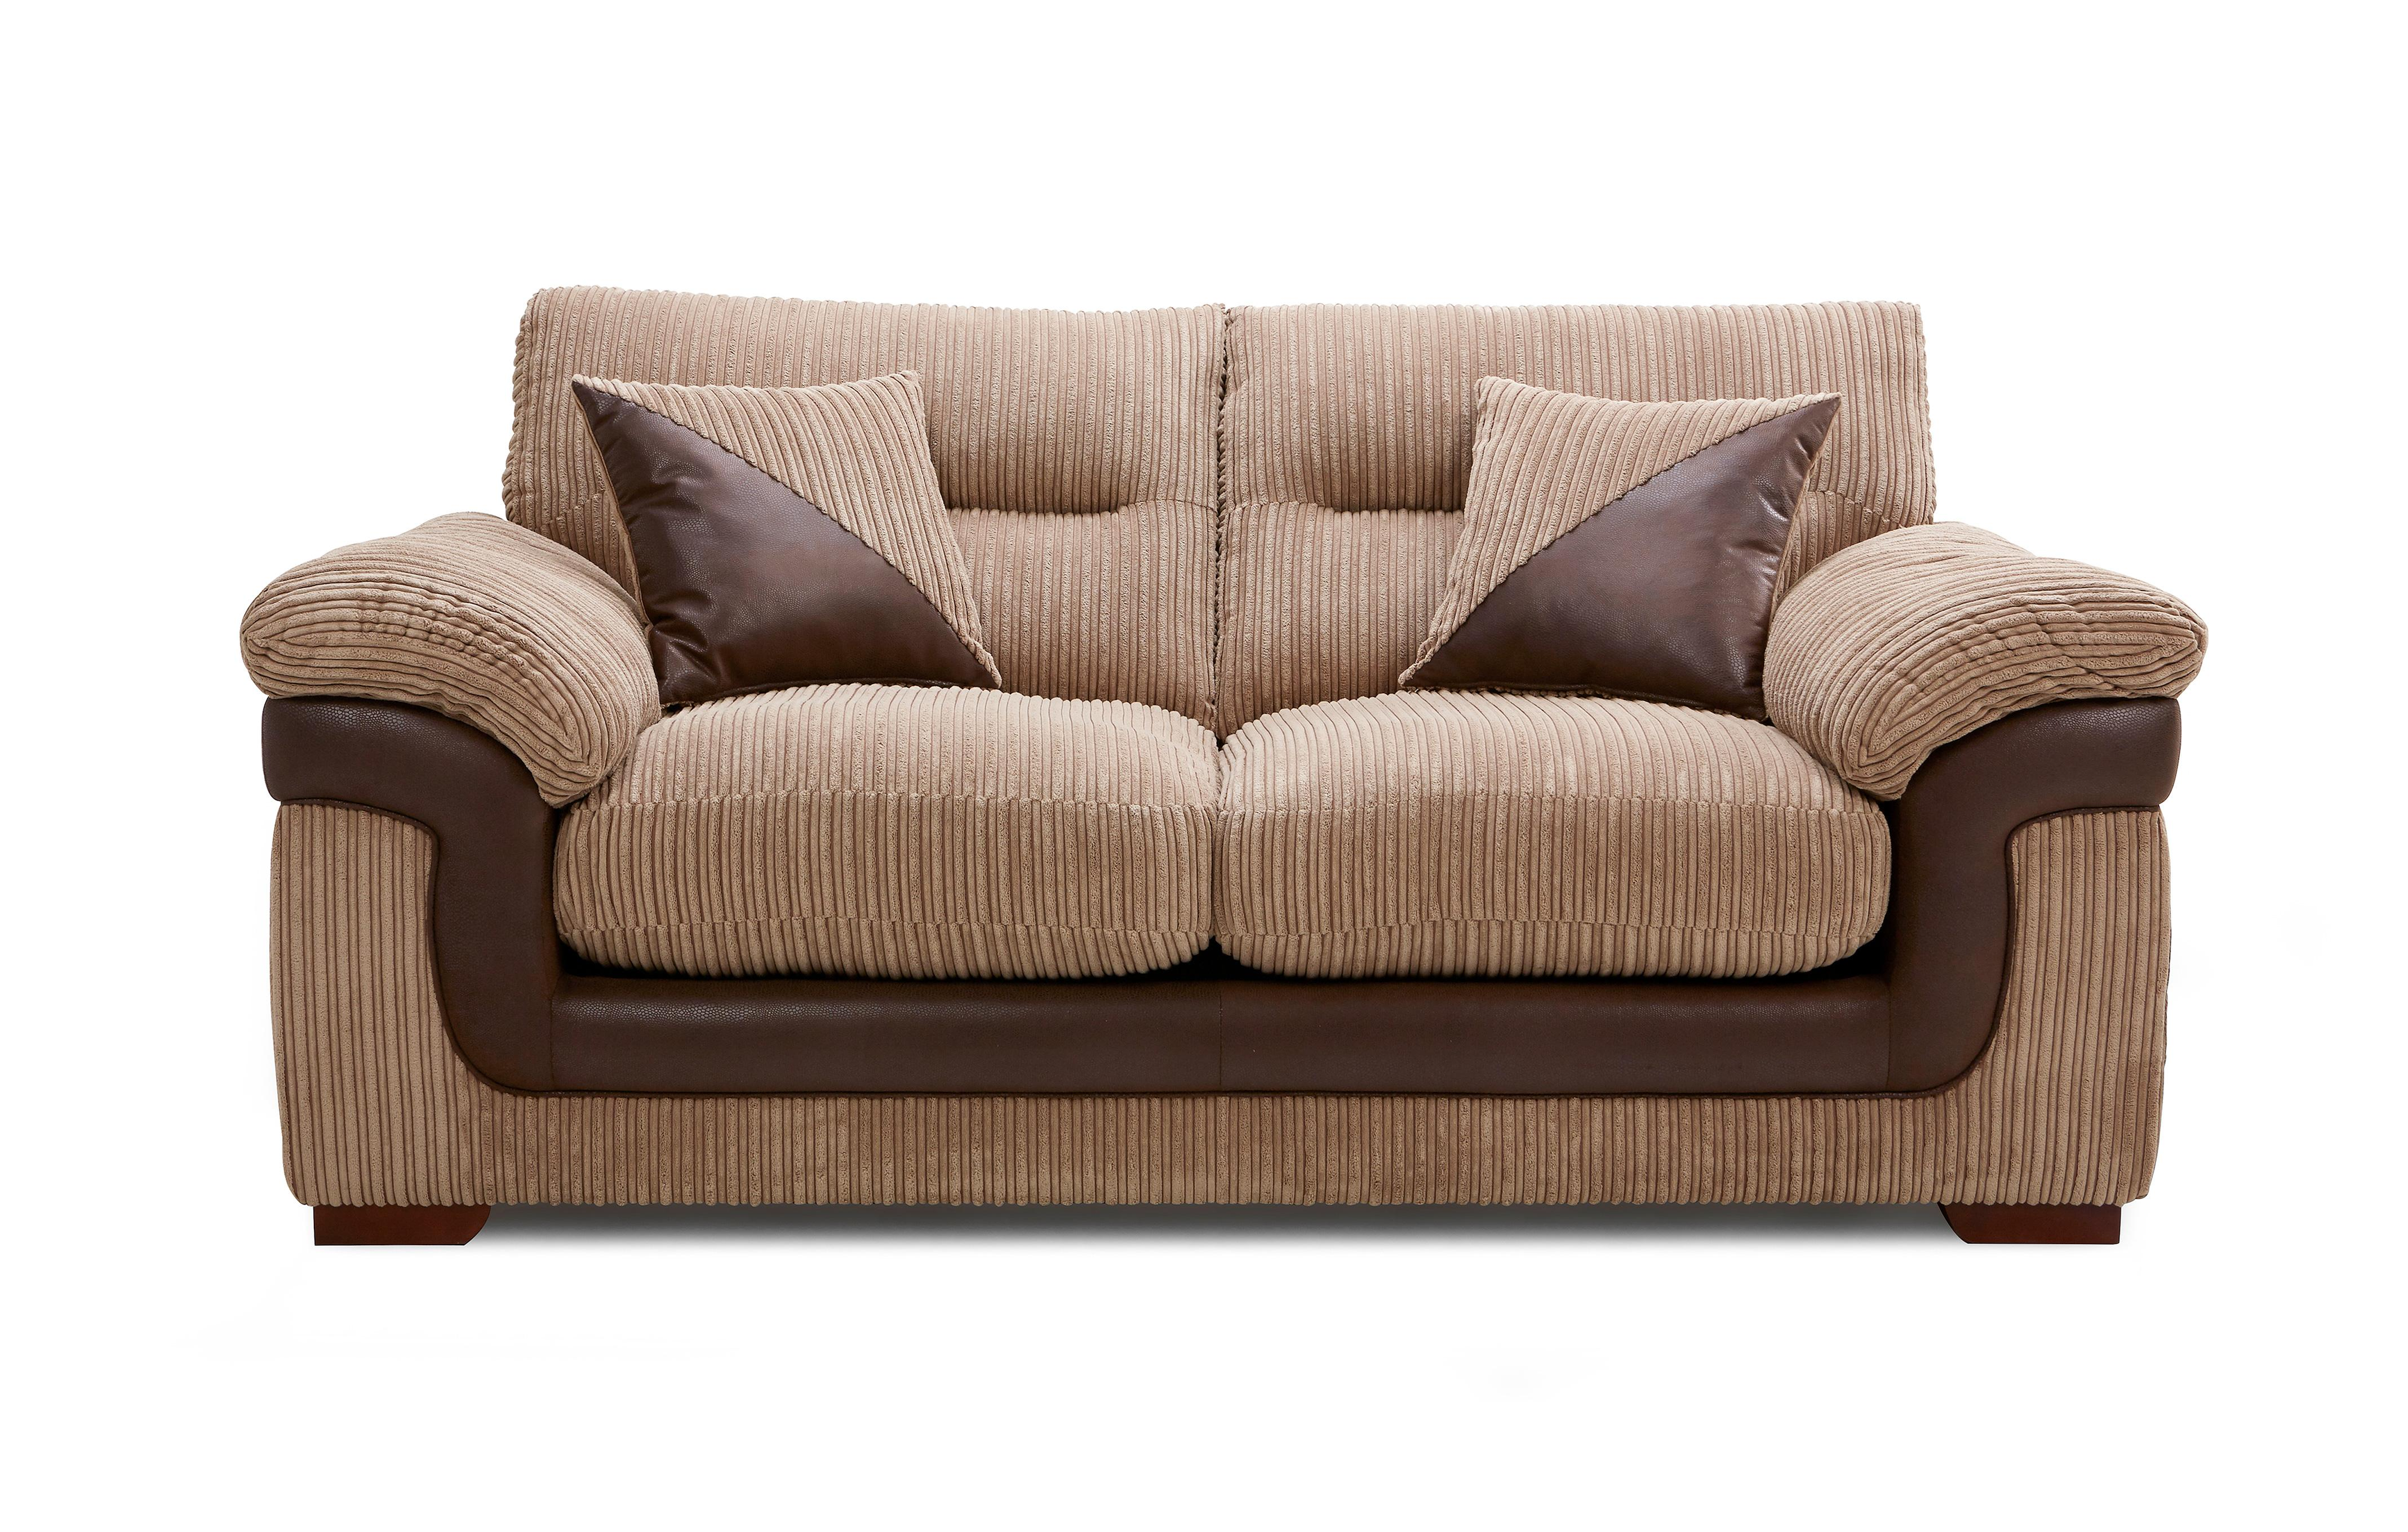 Laura Ashley Abingdon 2 Seater Sofa Bed